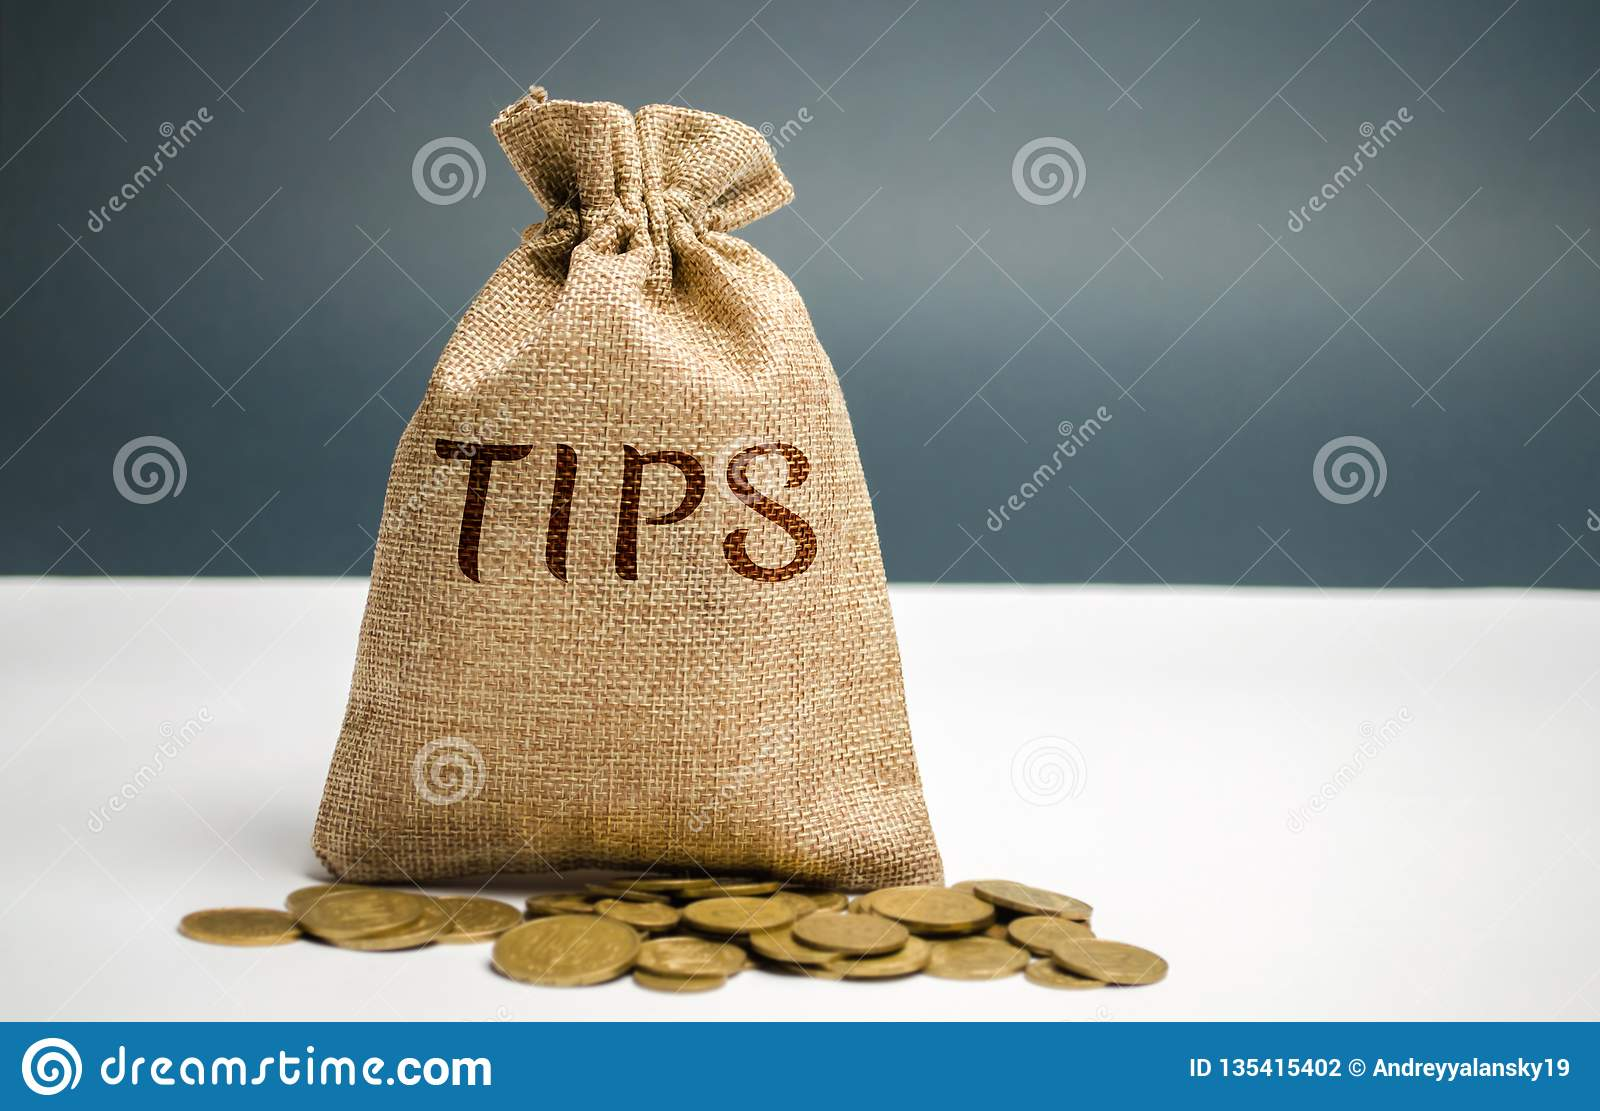 Money bag with the word Tips. Award for good service in the cafe / restaurant. A gratuity is a sum of money customarily given by a